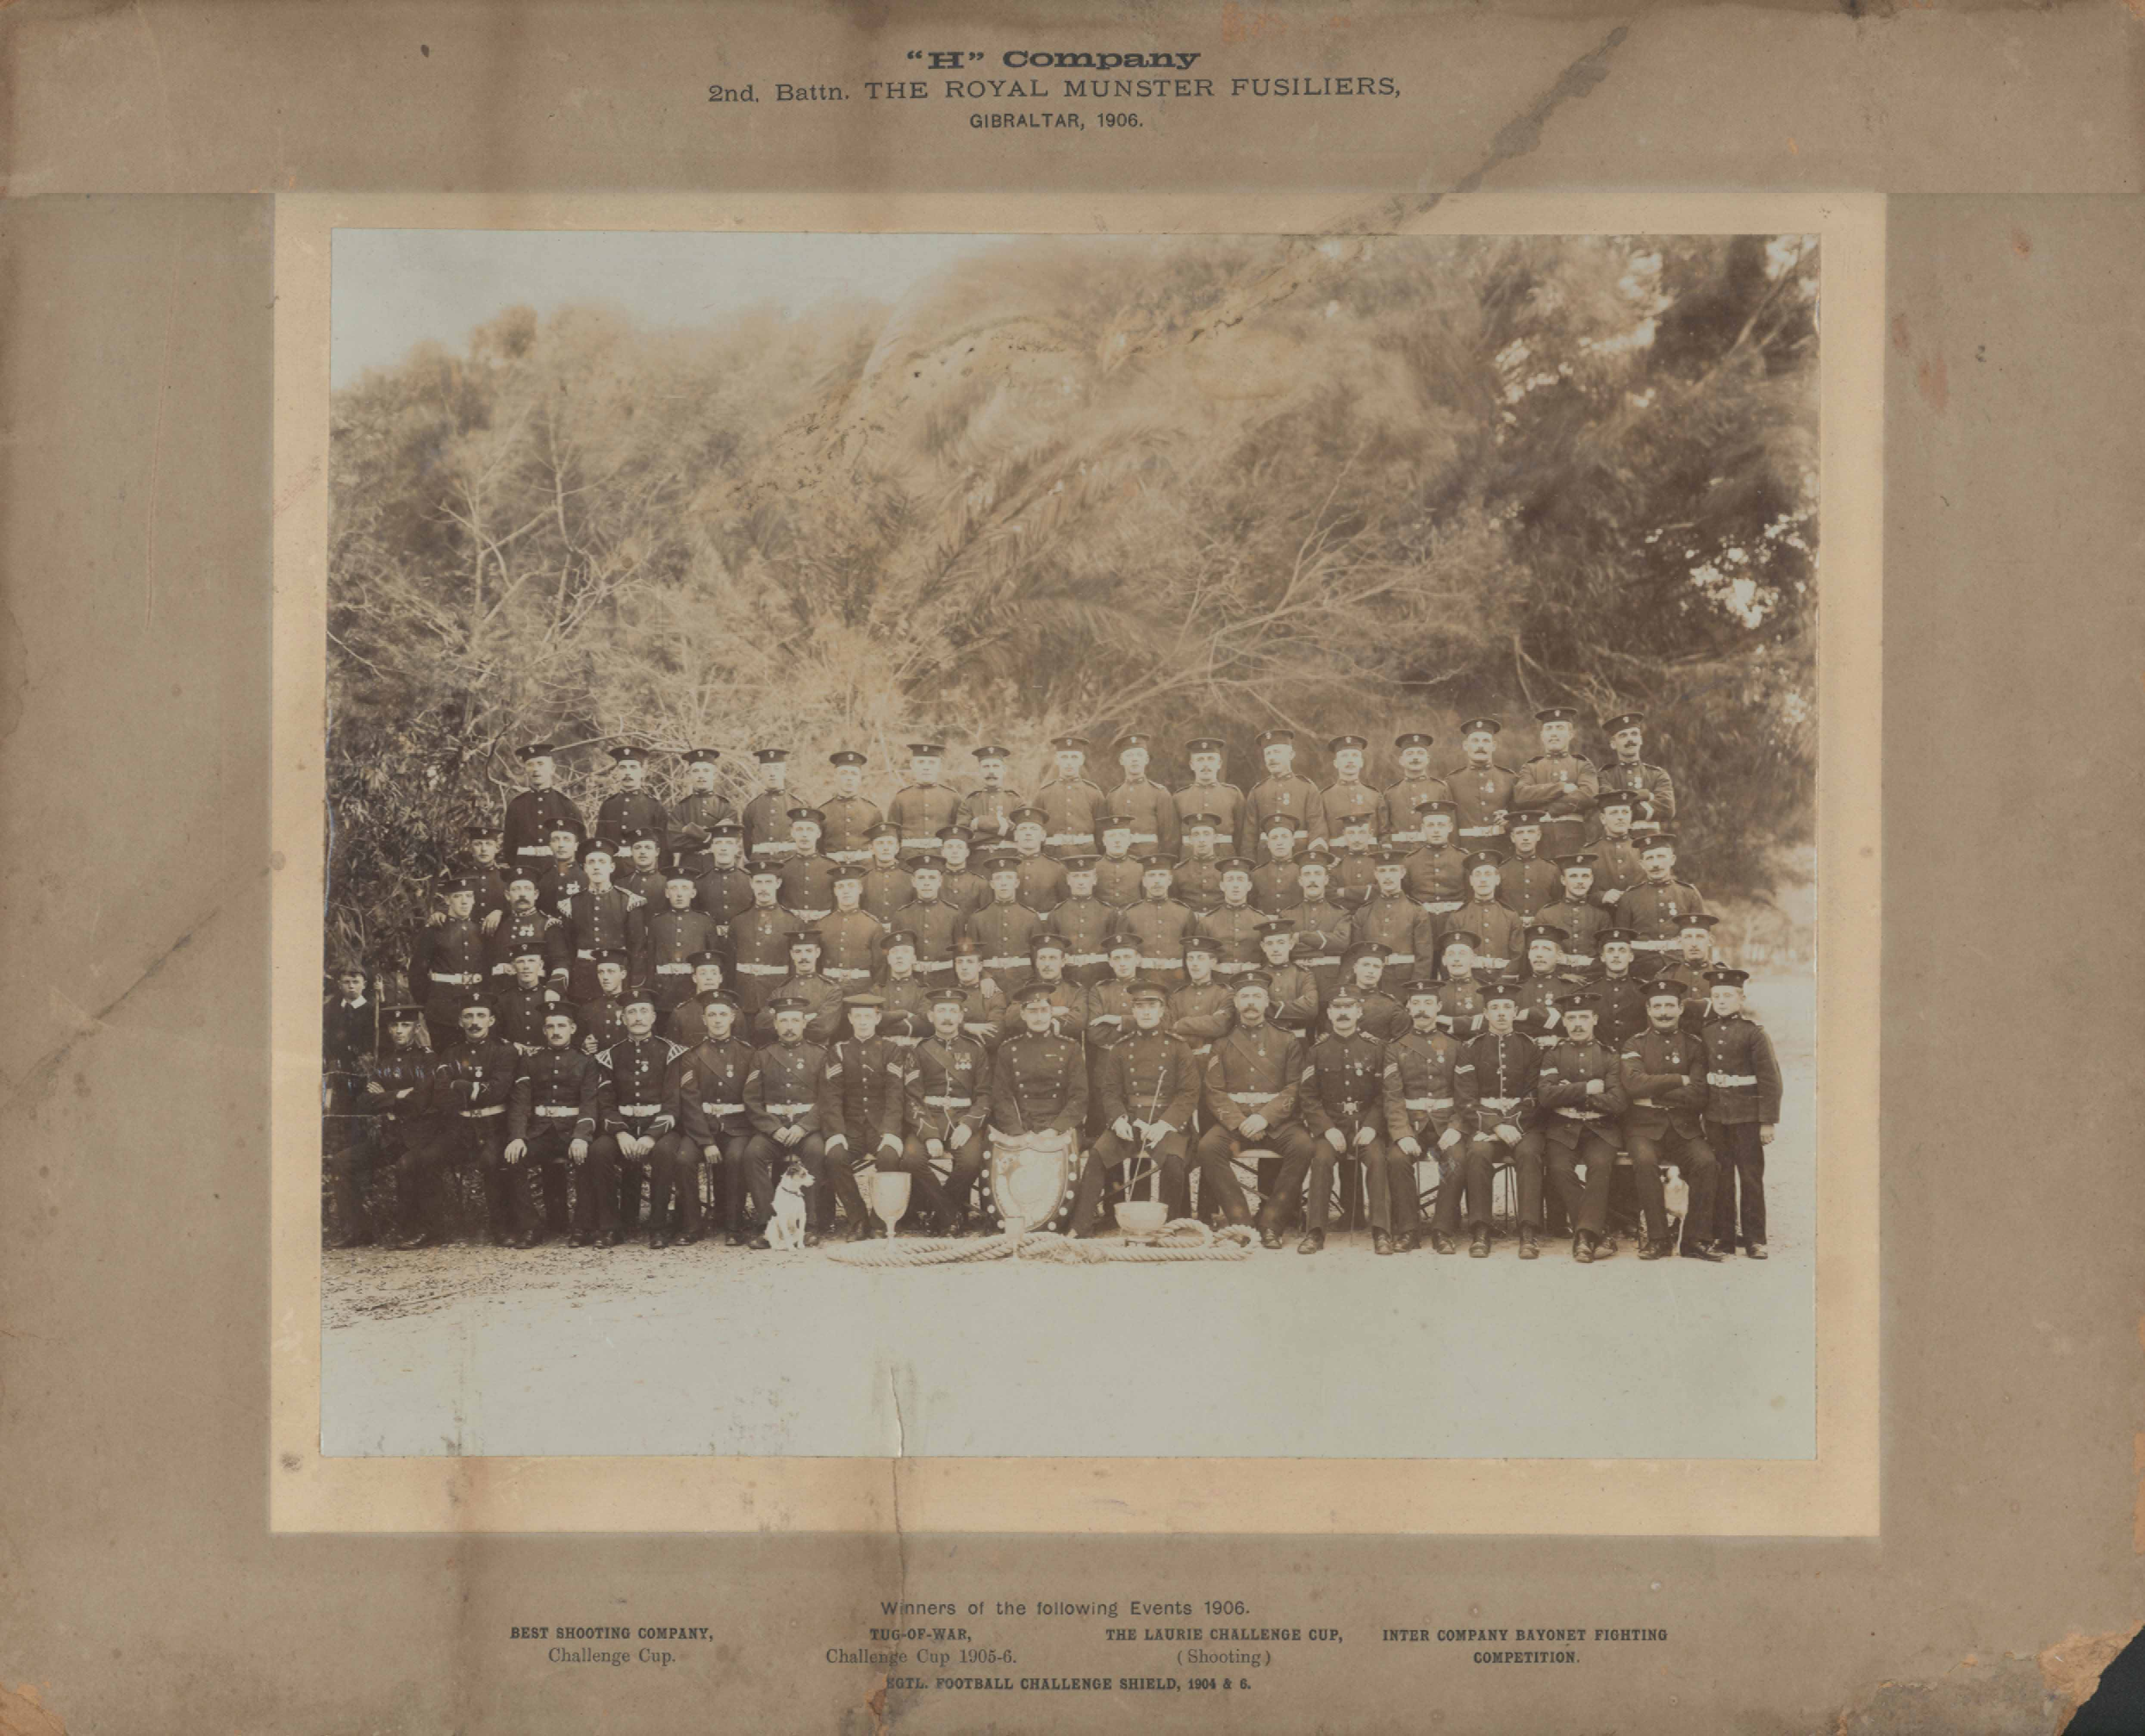 H Company, 2nd Battallion The Royal Munster Fusiliers in Gibraltar 1906